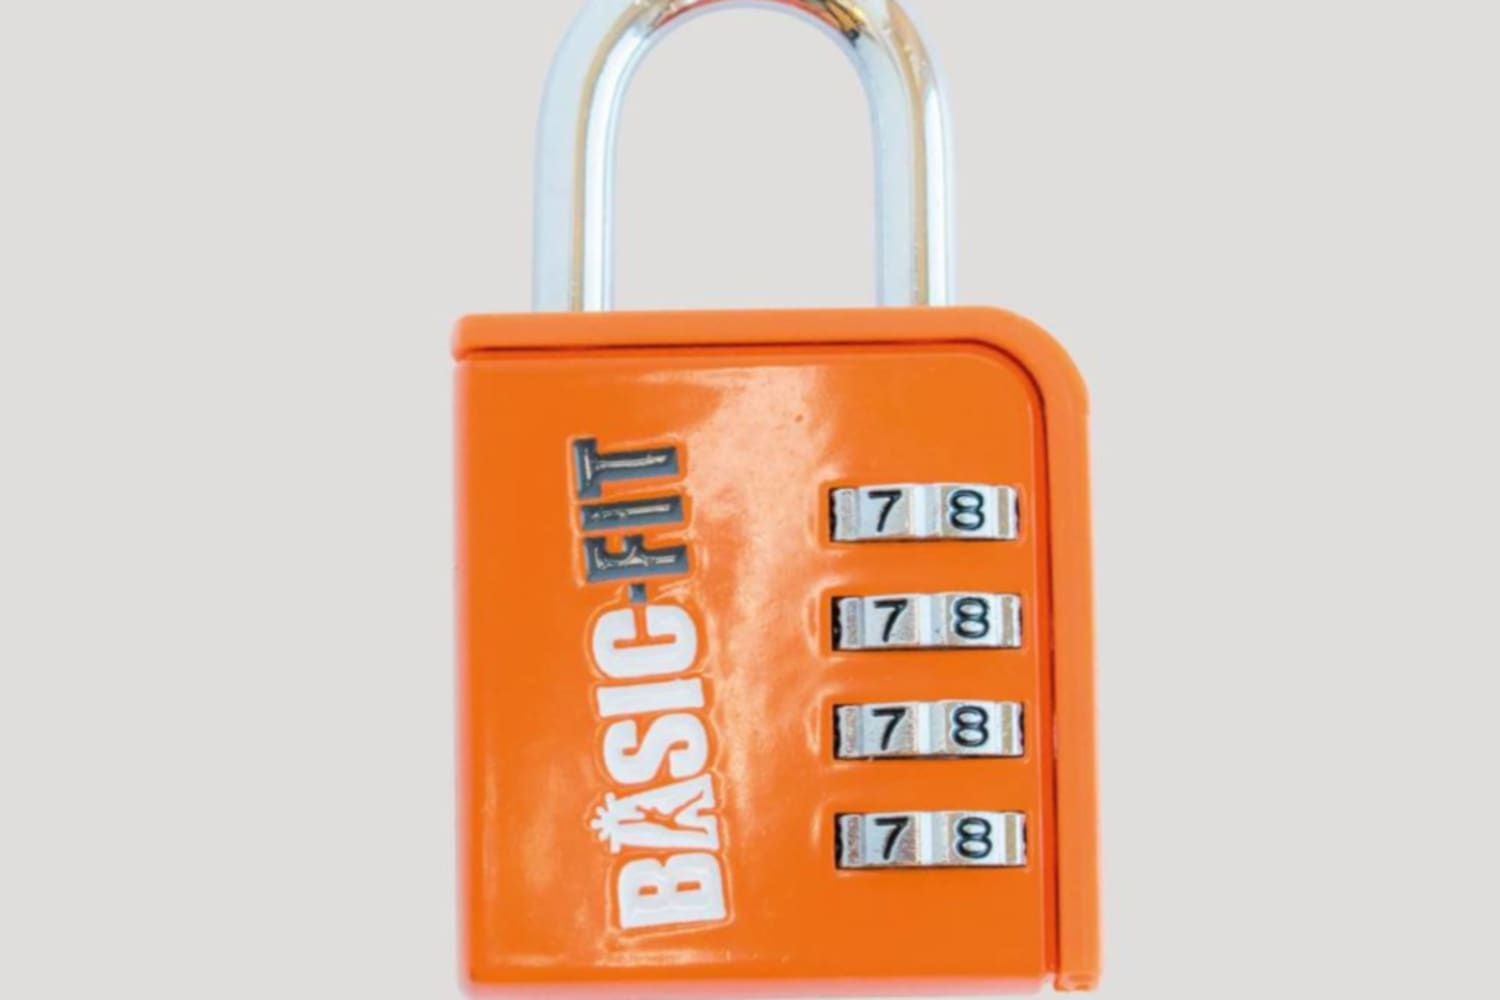 A Basic Fit locker padlock